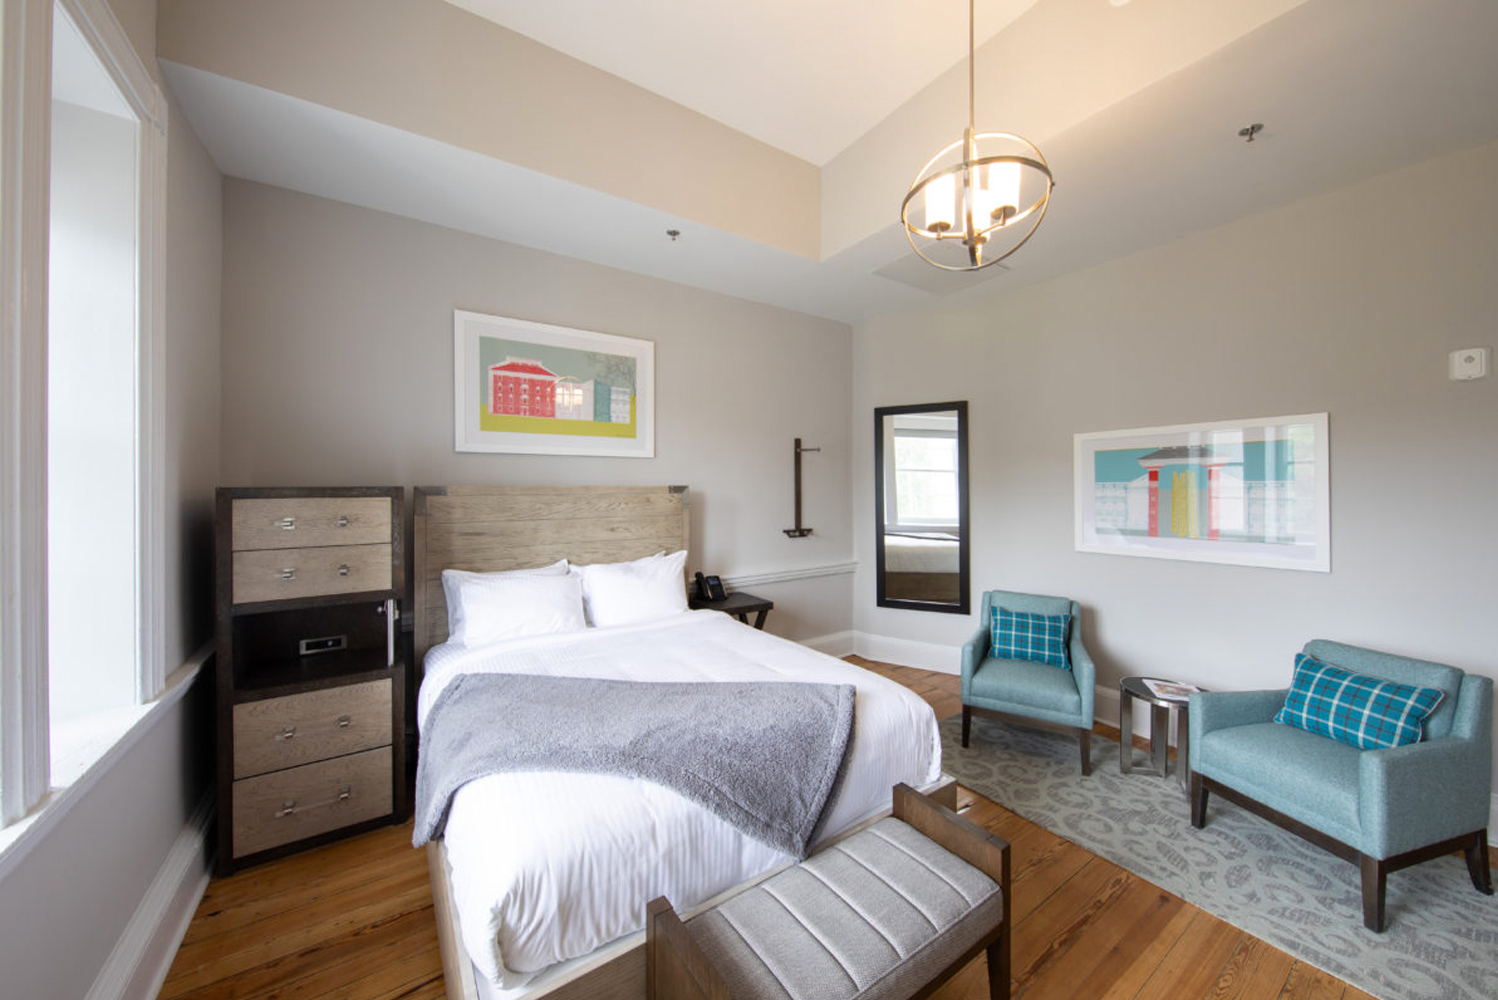 The locally-owned 49-room hotel is housed in a historic, Jeffersonian-style building.